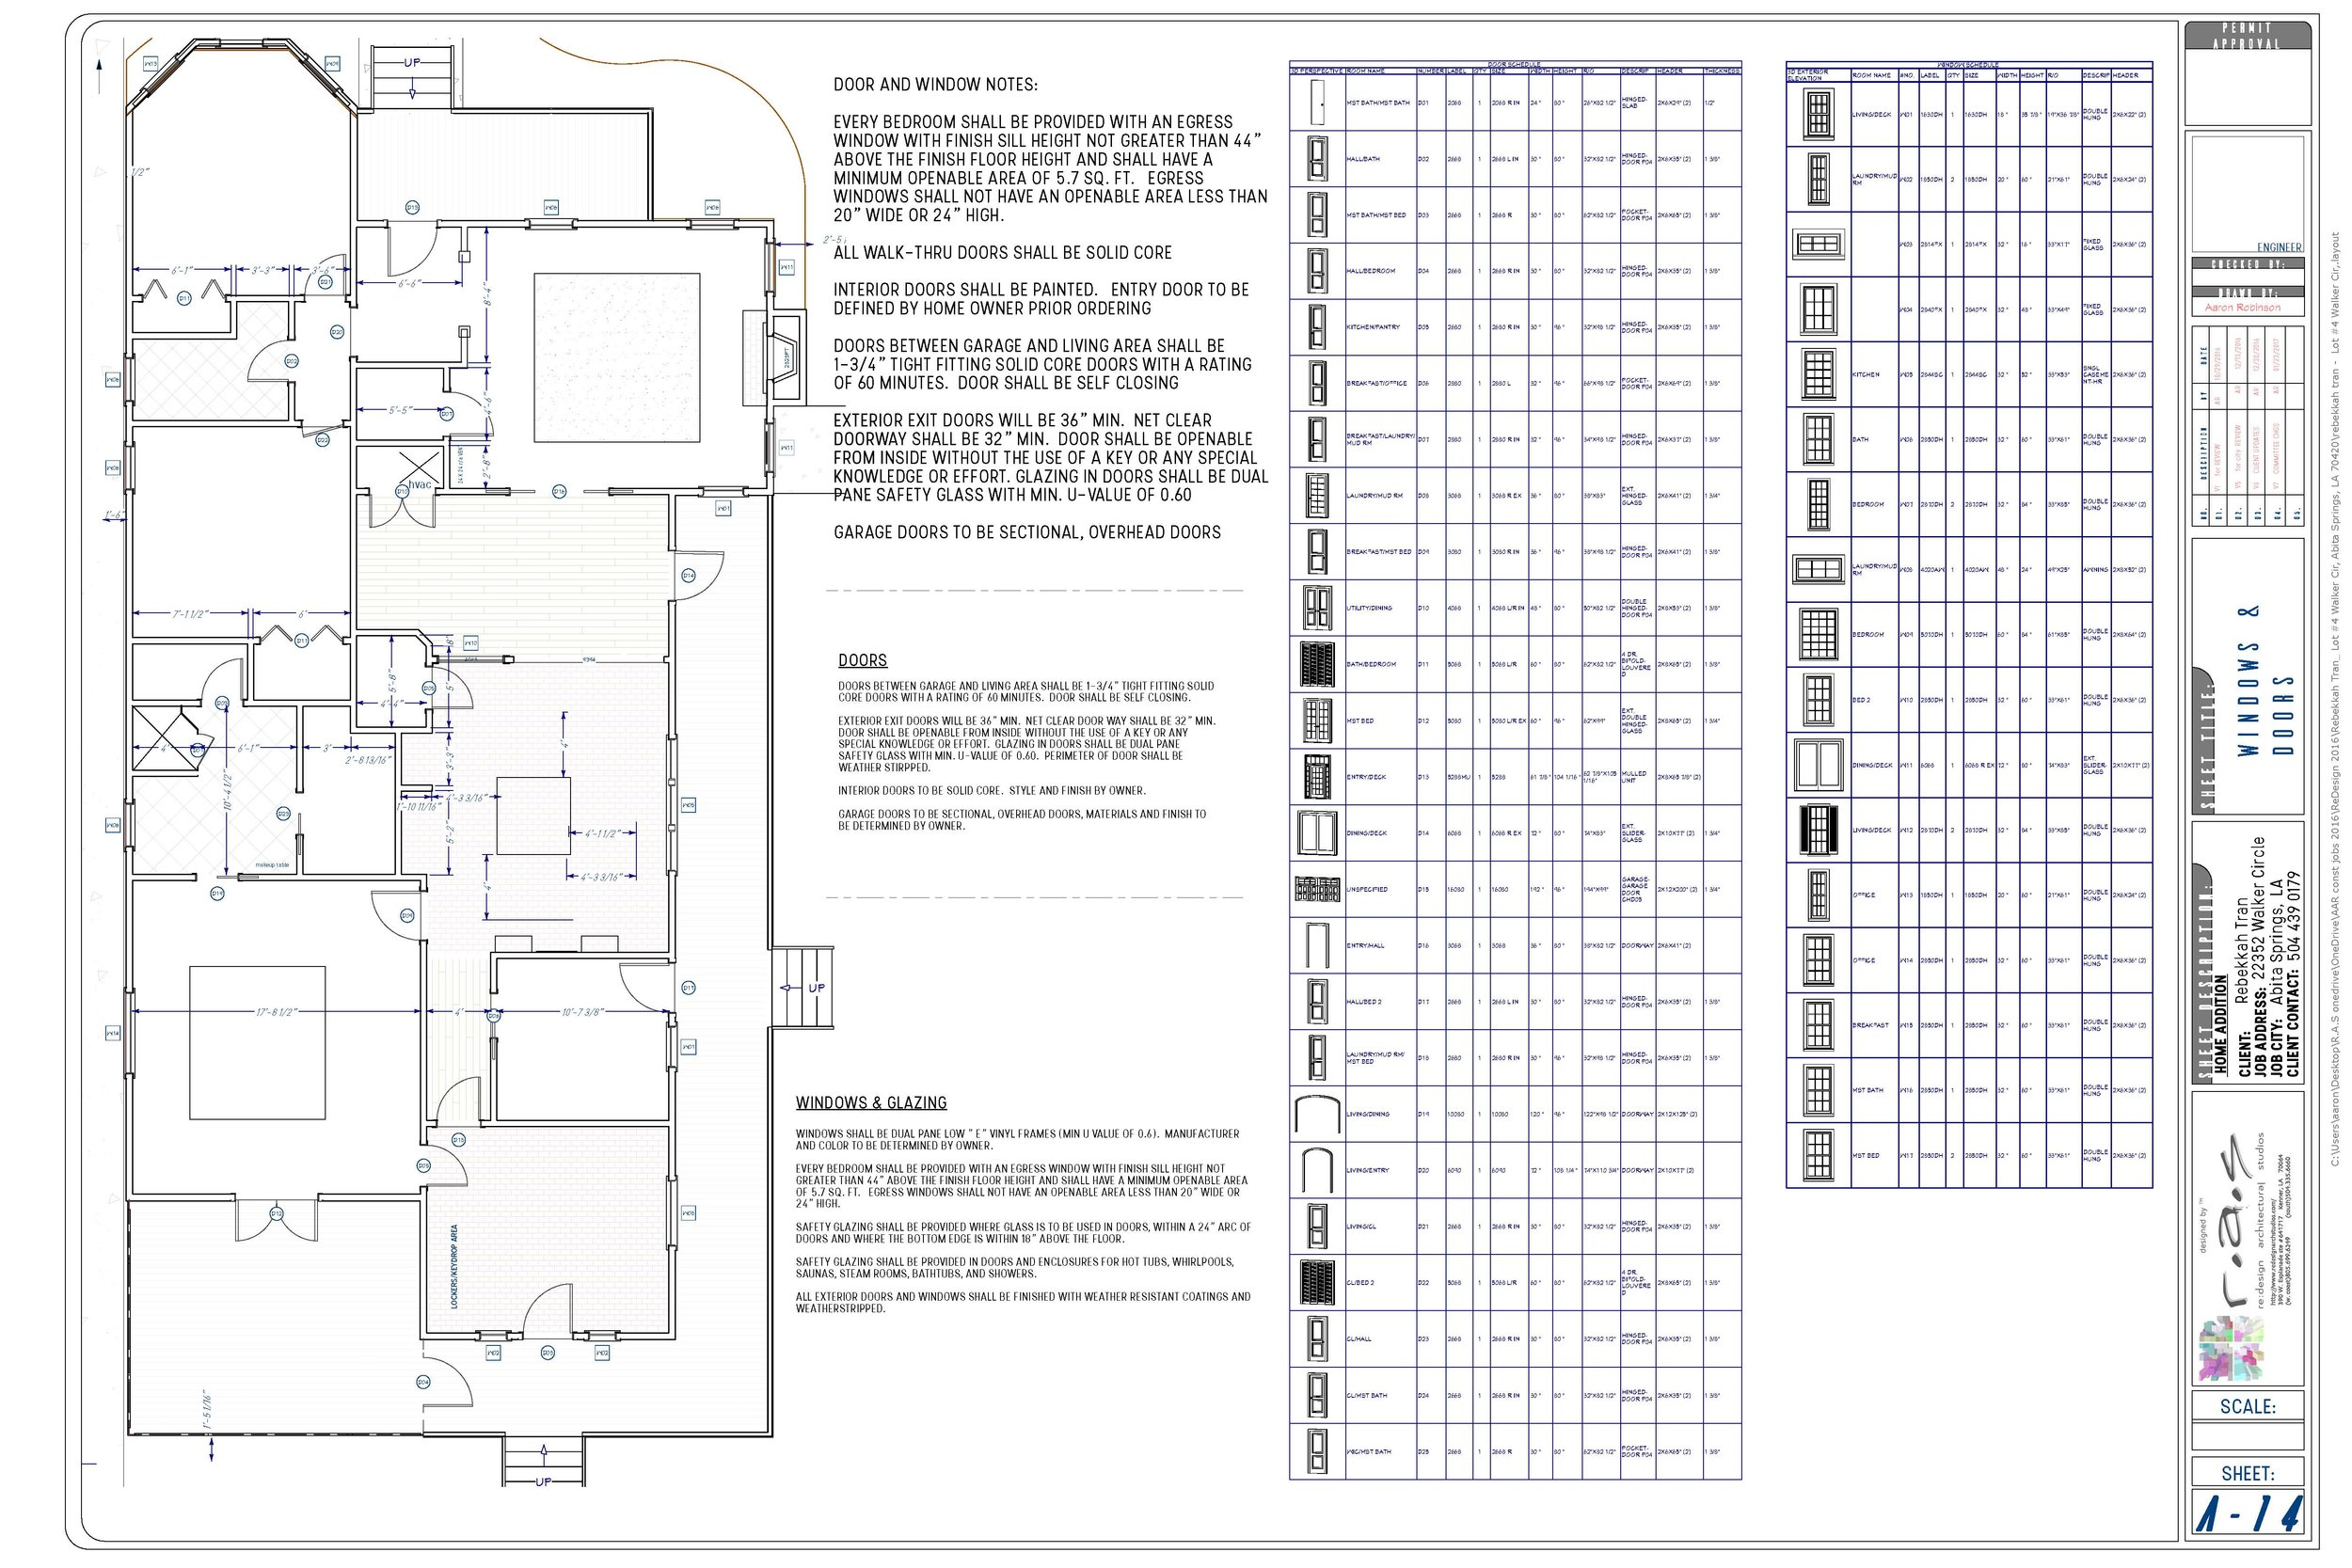 rebekkah Tran_ 22352 Walker Cir, final layout - V7  01232017_Page_14.jpg